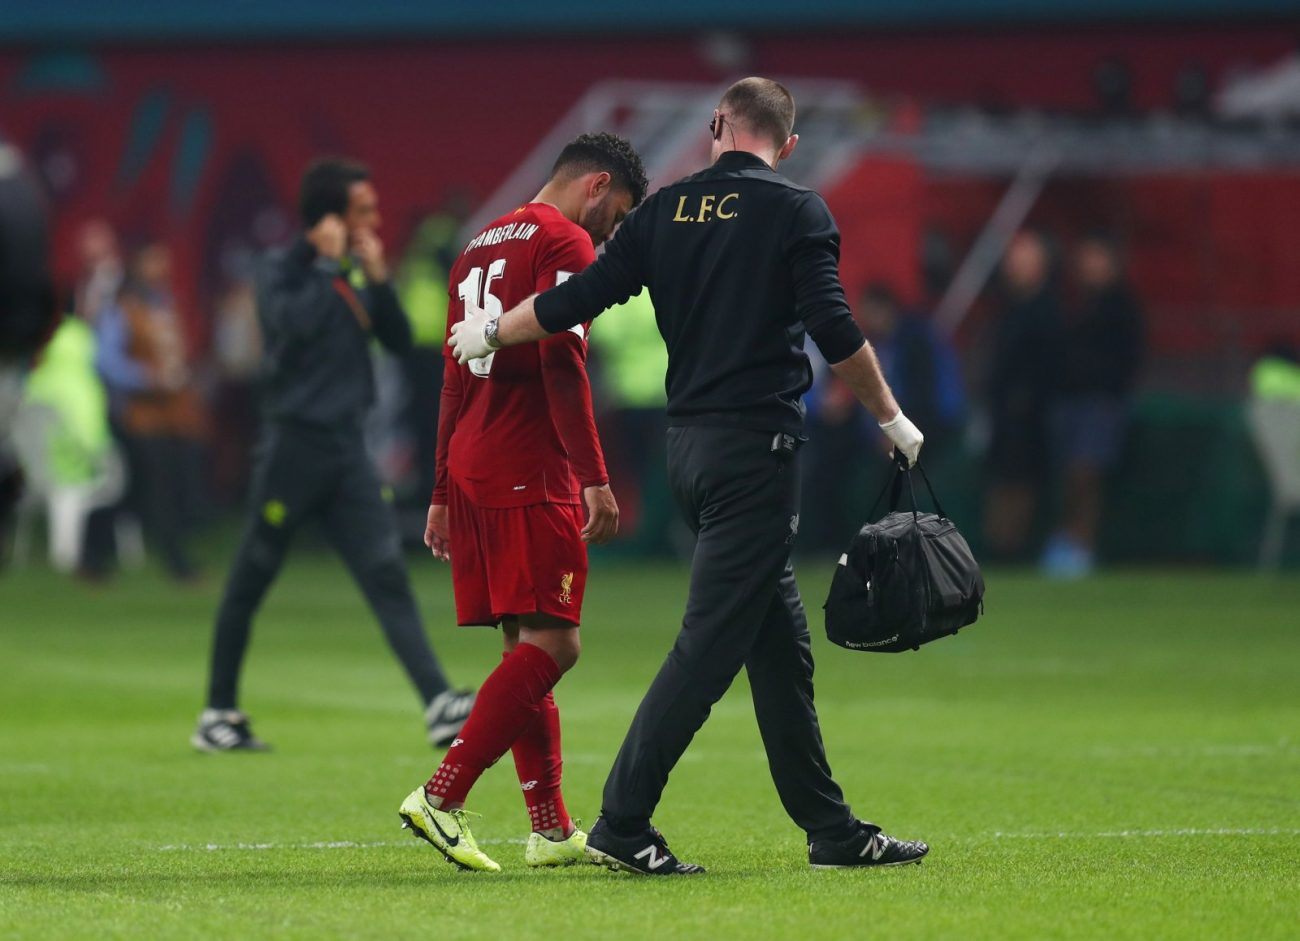 Alex Oxlade-Chamberlain out of action till 2020 with ankle ligament damage